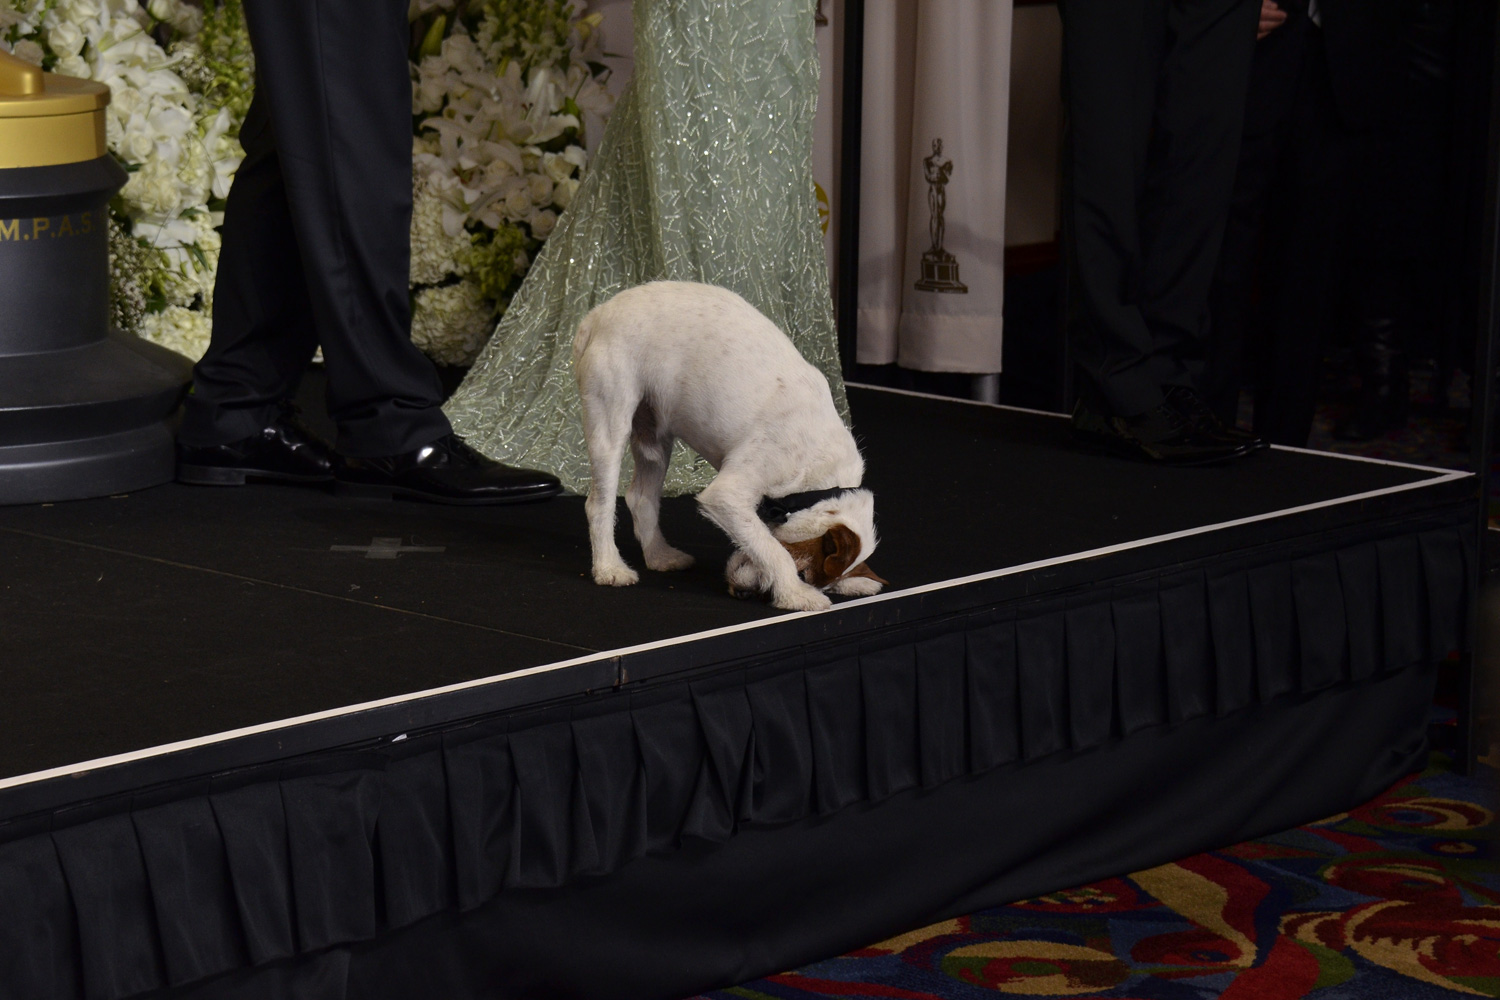 Feb. 26, 2012. Uggie the dog from The Artist poses in the press room at the 84th Annual Academy Awards in Hollywood, Calif.